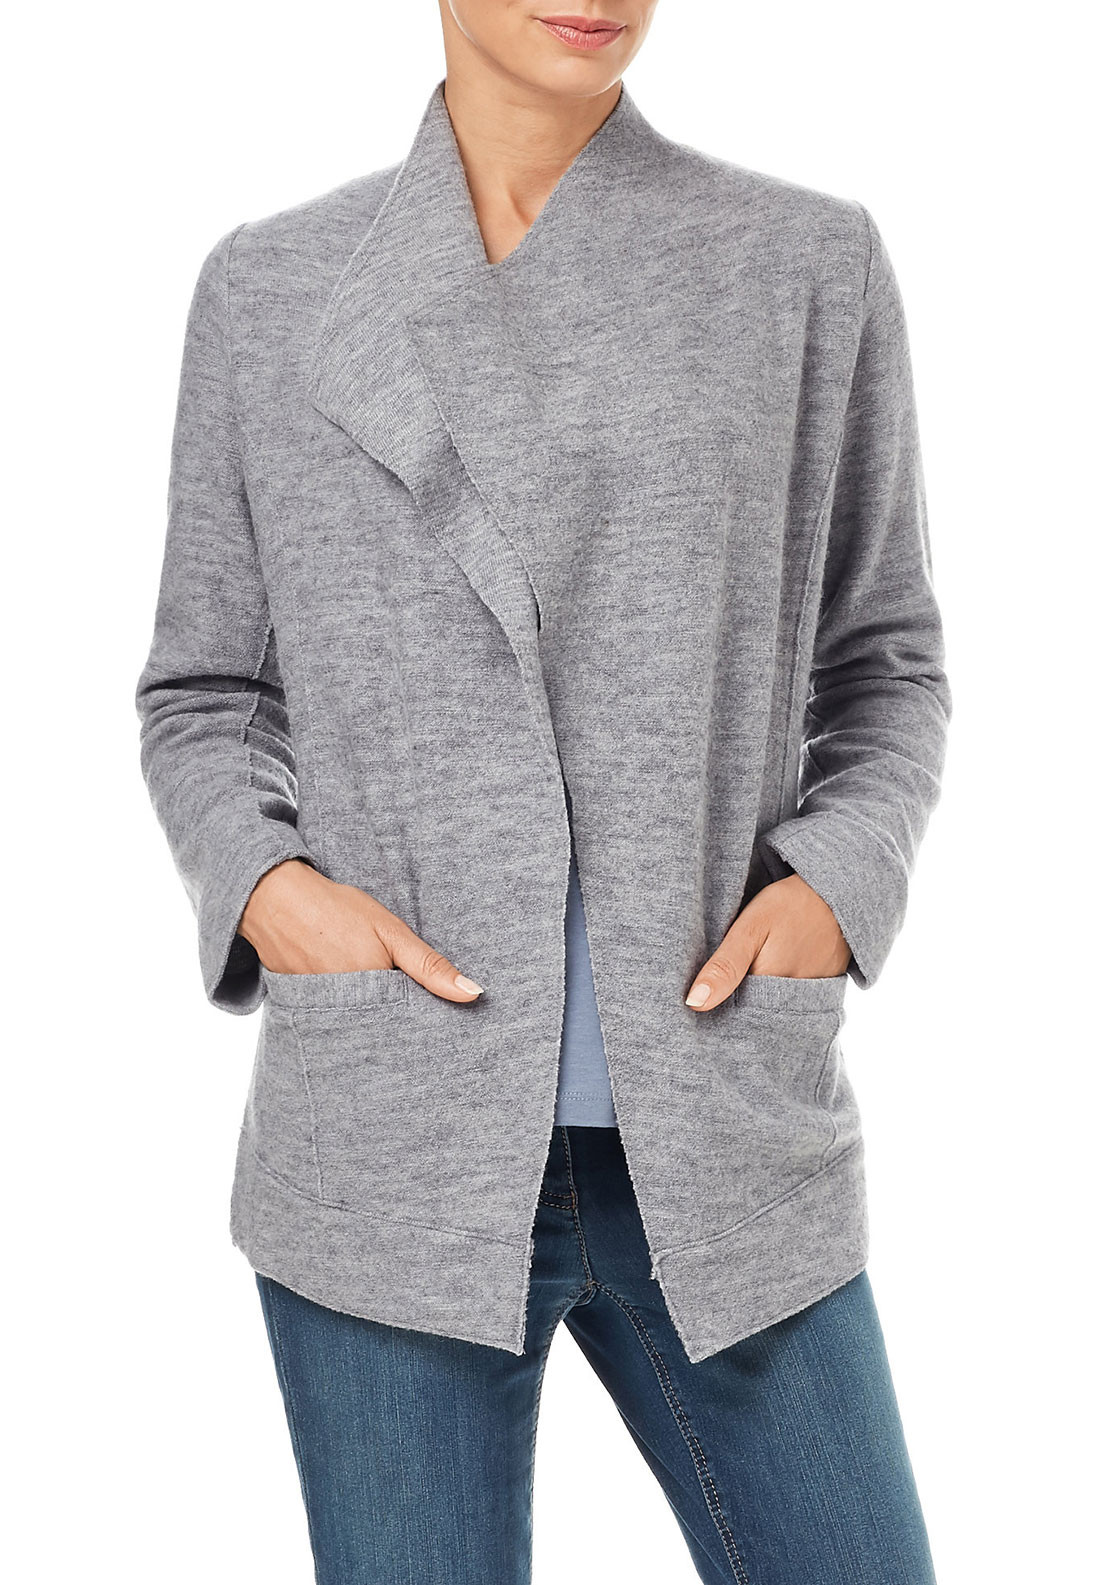 Gerry Weber Merino Wool Blazer, Grey